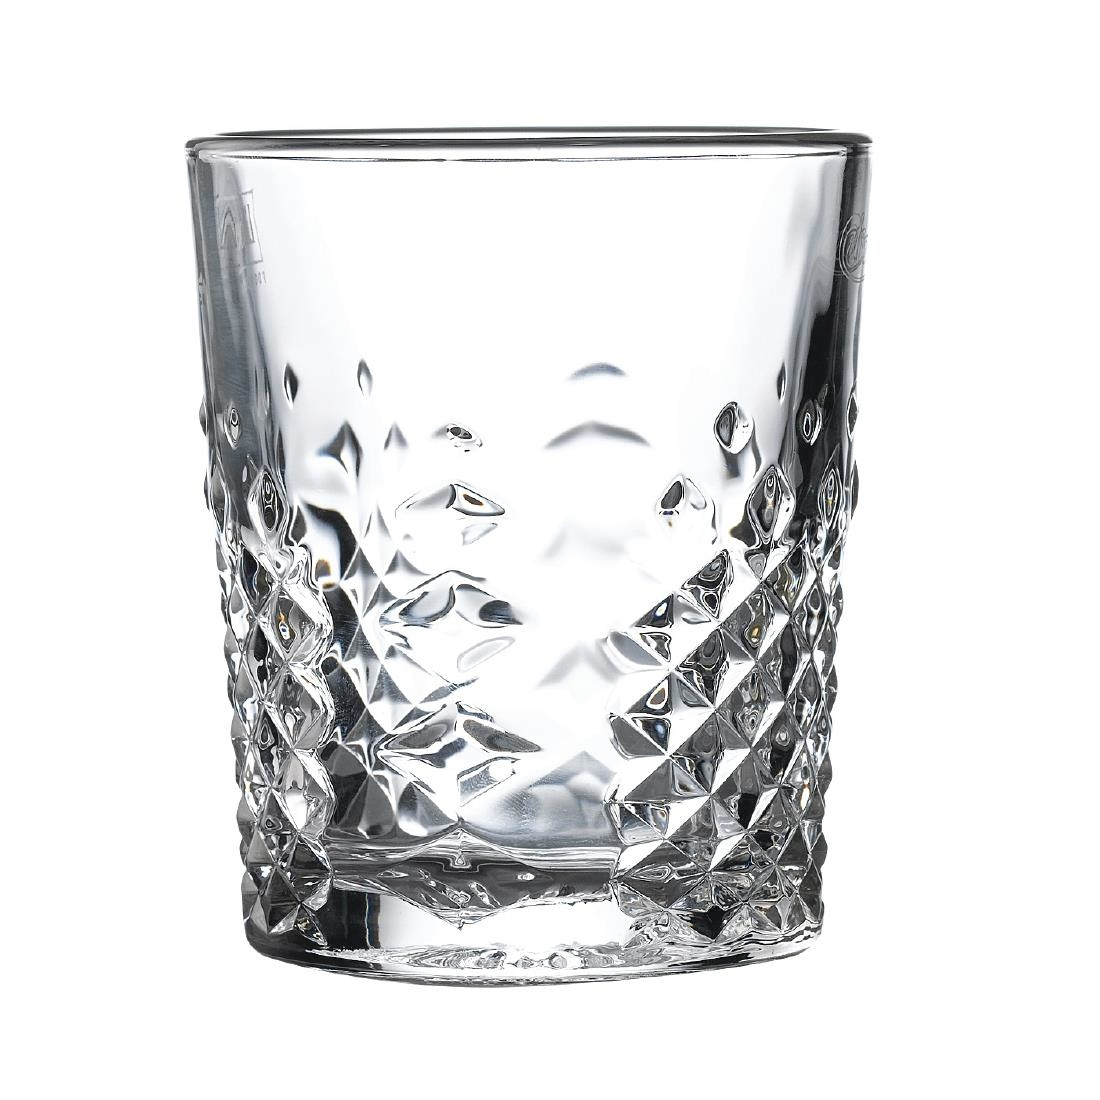 Image of Artis Carat Double Old Fashioned Glass 350ml (Pack of 12) Pack of 12